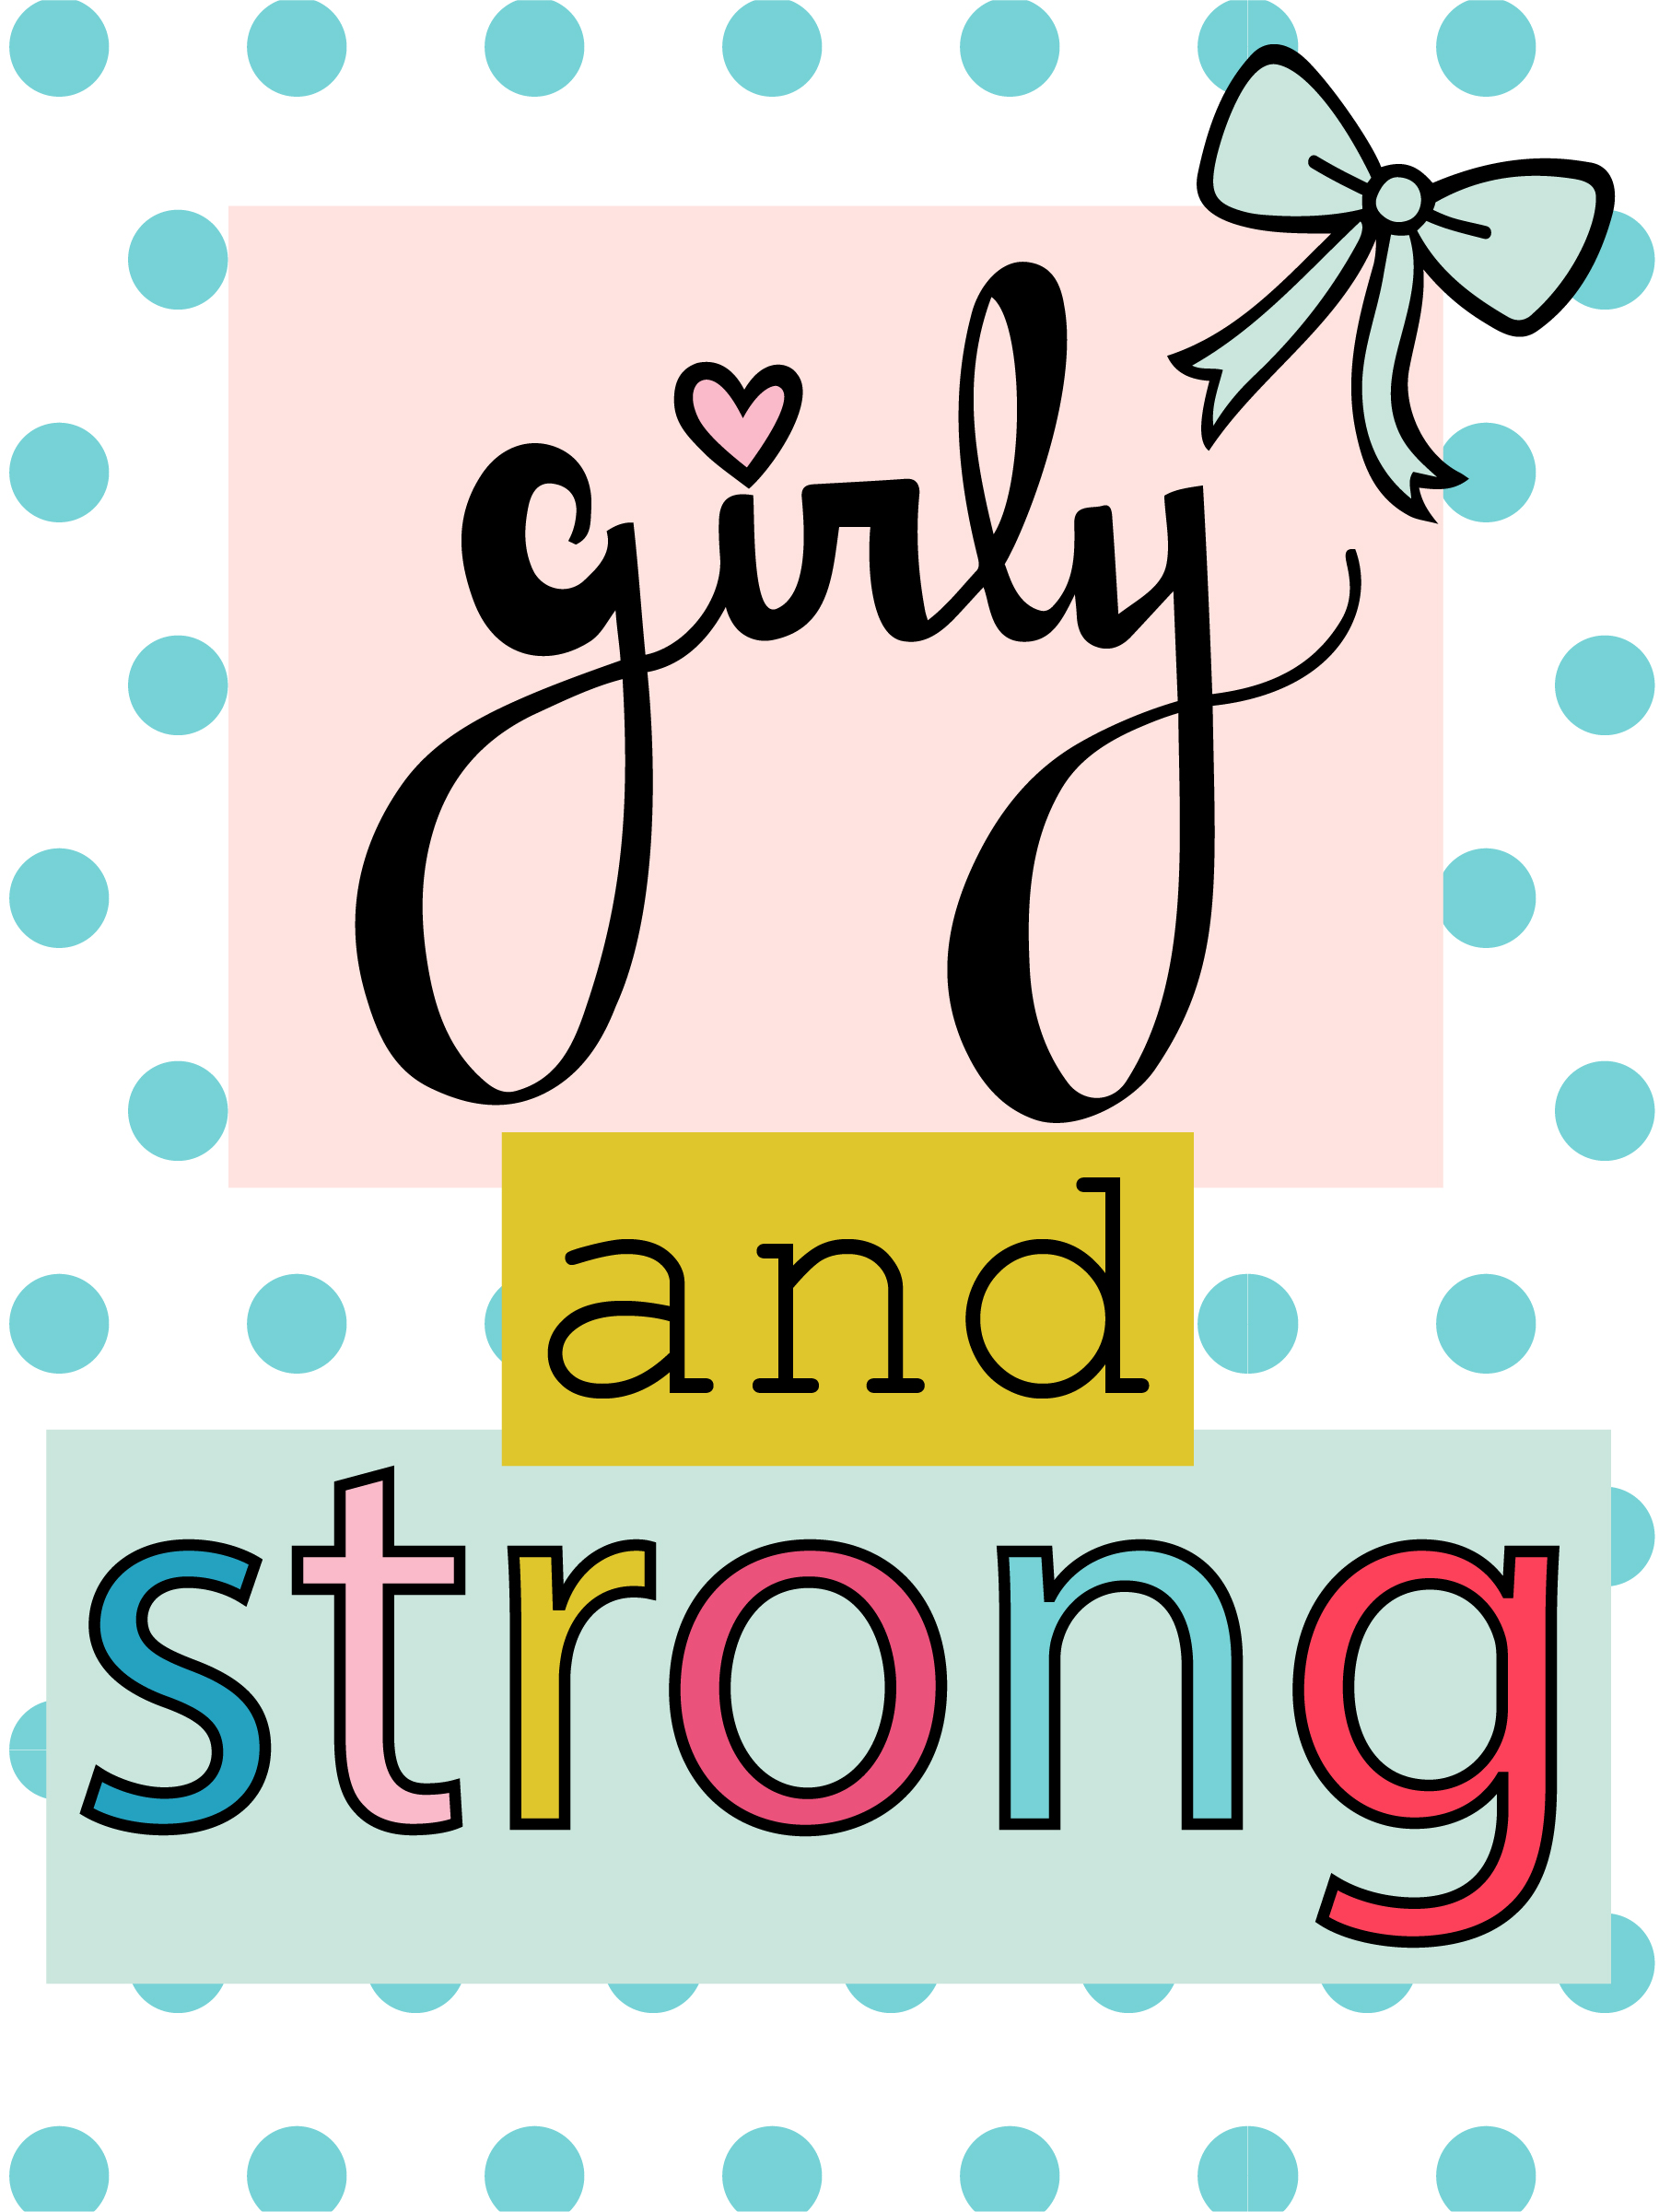 Girly and Strong-58.jpg